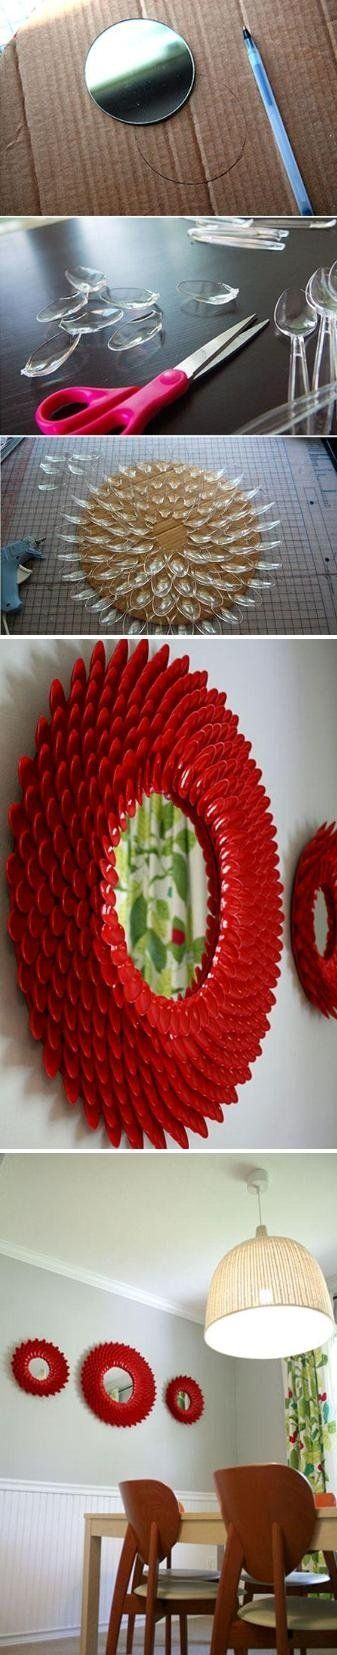 Make a Mirror from Plastic Spoon - Make a Chrysanthemum Mirror from Plastic Spoons